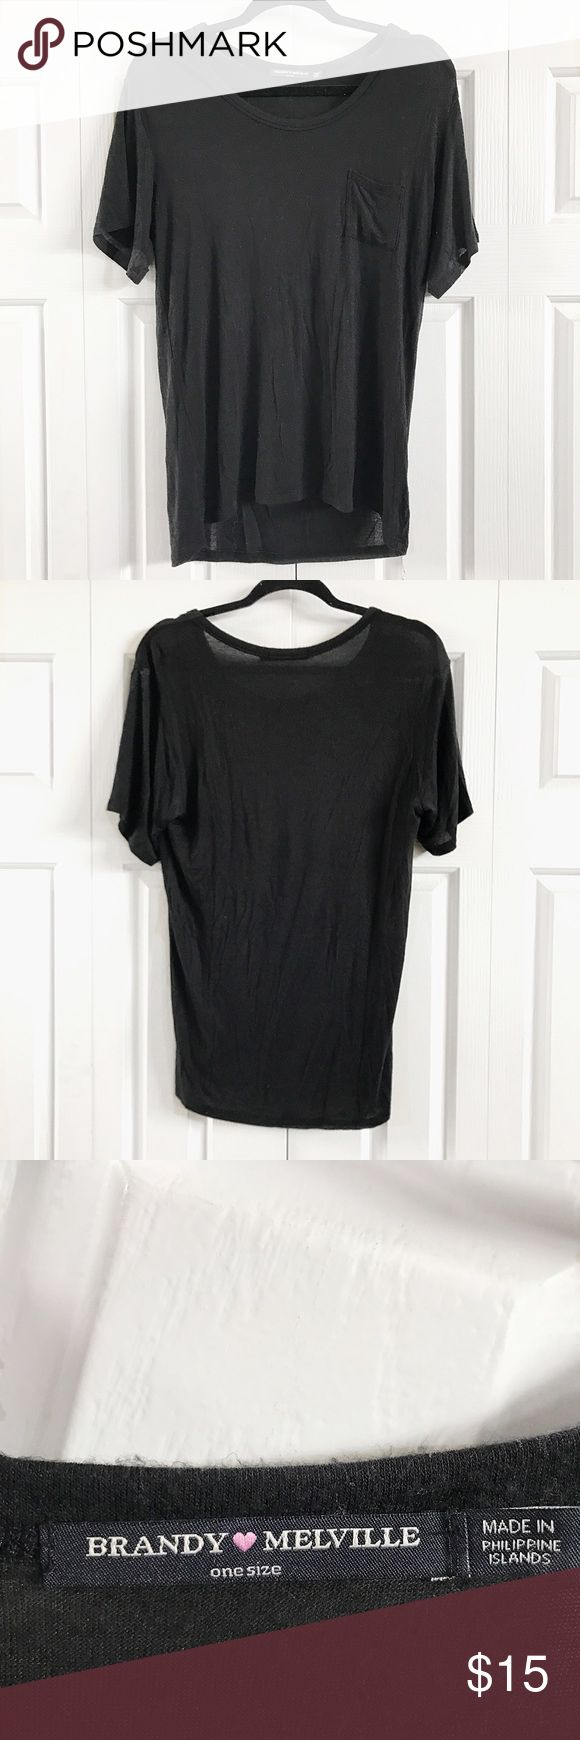 •• Brandy Melville T-shirt This super soft Brandy t-shirt would go great with anything! It has only been worn a couple times and is in great condition.                                                                  •No Trades•                                                                          •I do accept reasonable offers•                                            •Ships between 1-2 days• Brandy Melville Tops